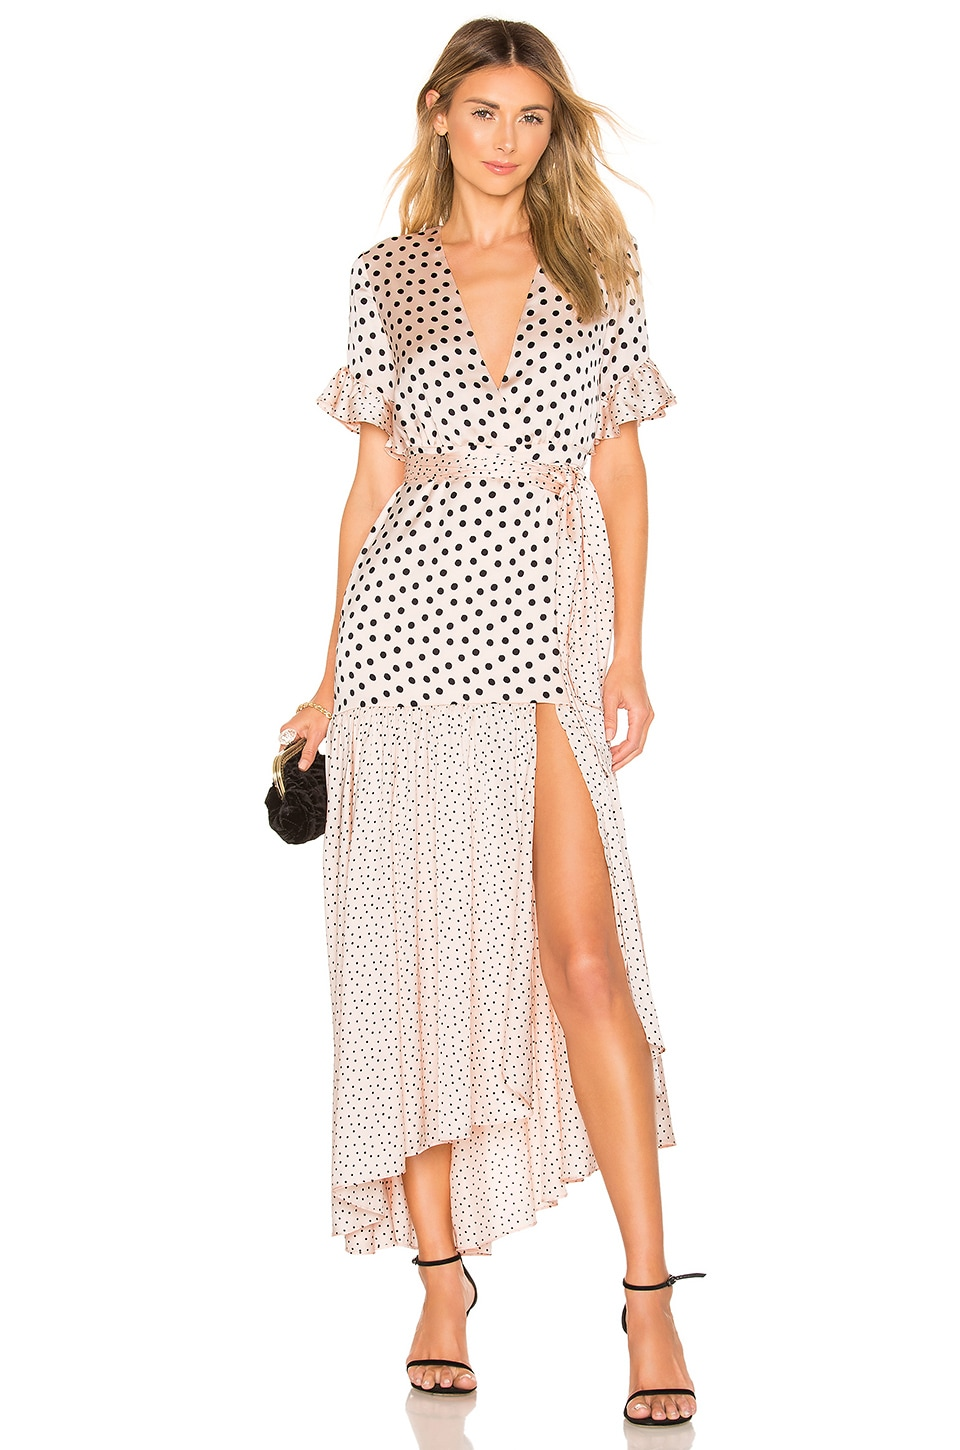 Privacy Please Solana Maxi Dress in Nude & Black